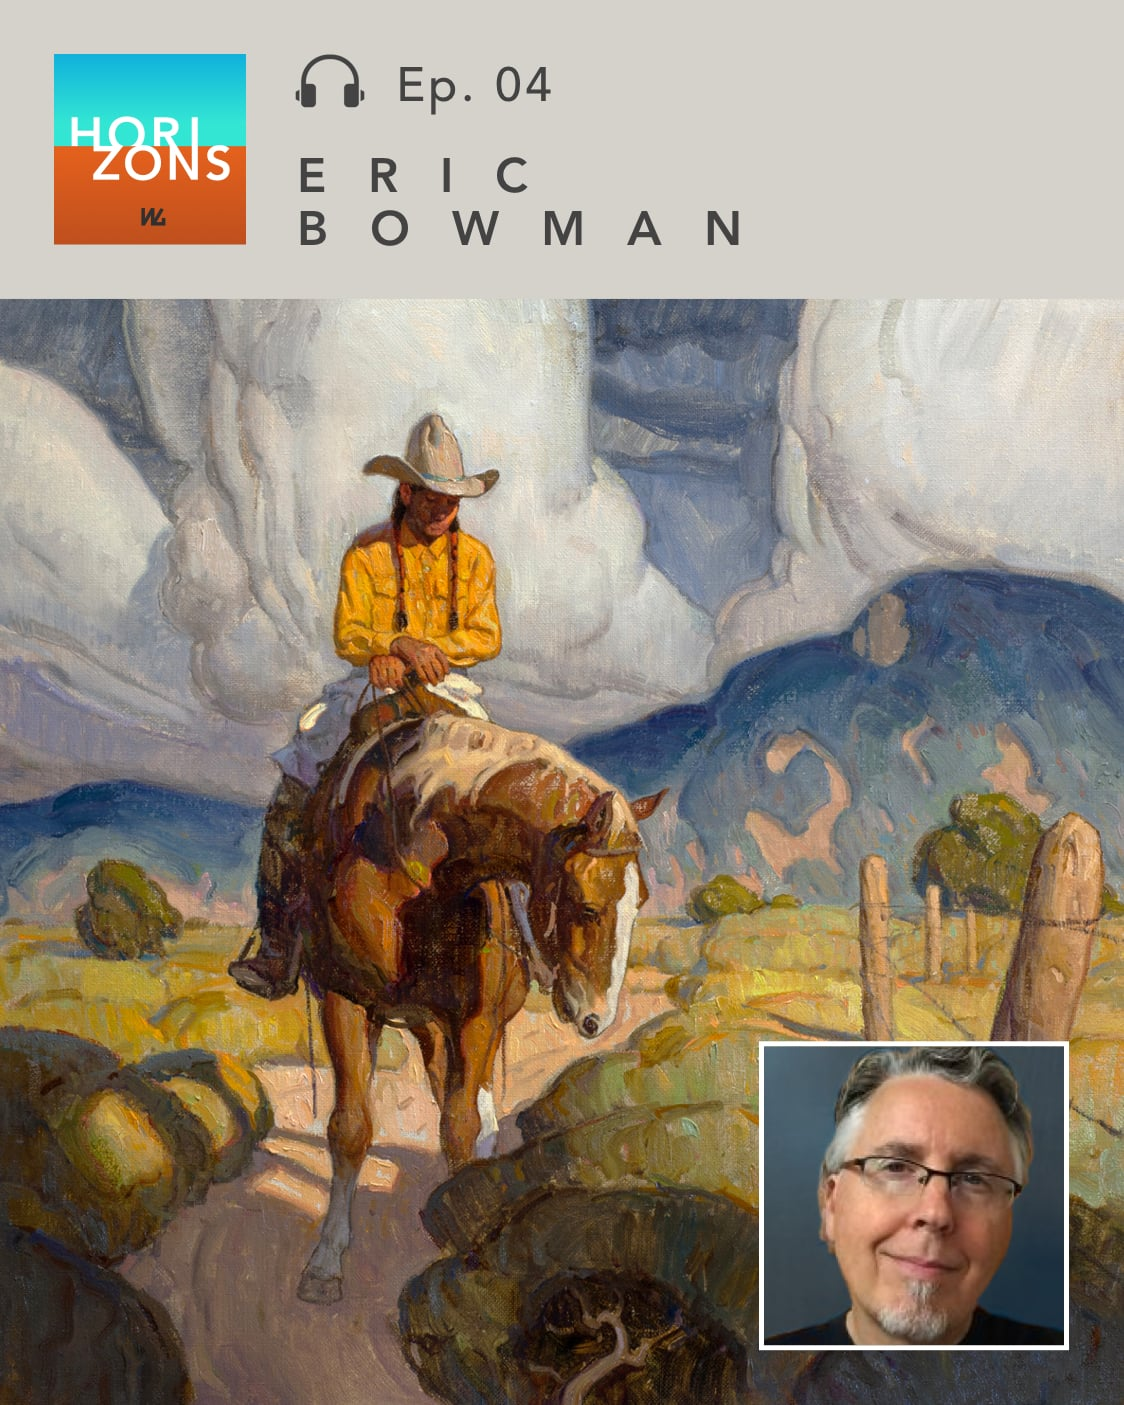 Eric Bowman on Horizons by Western Gallery